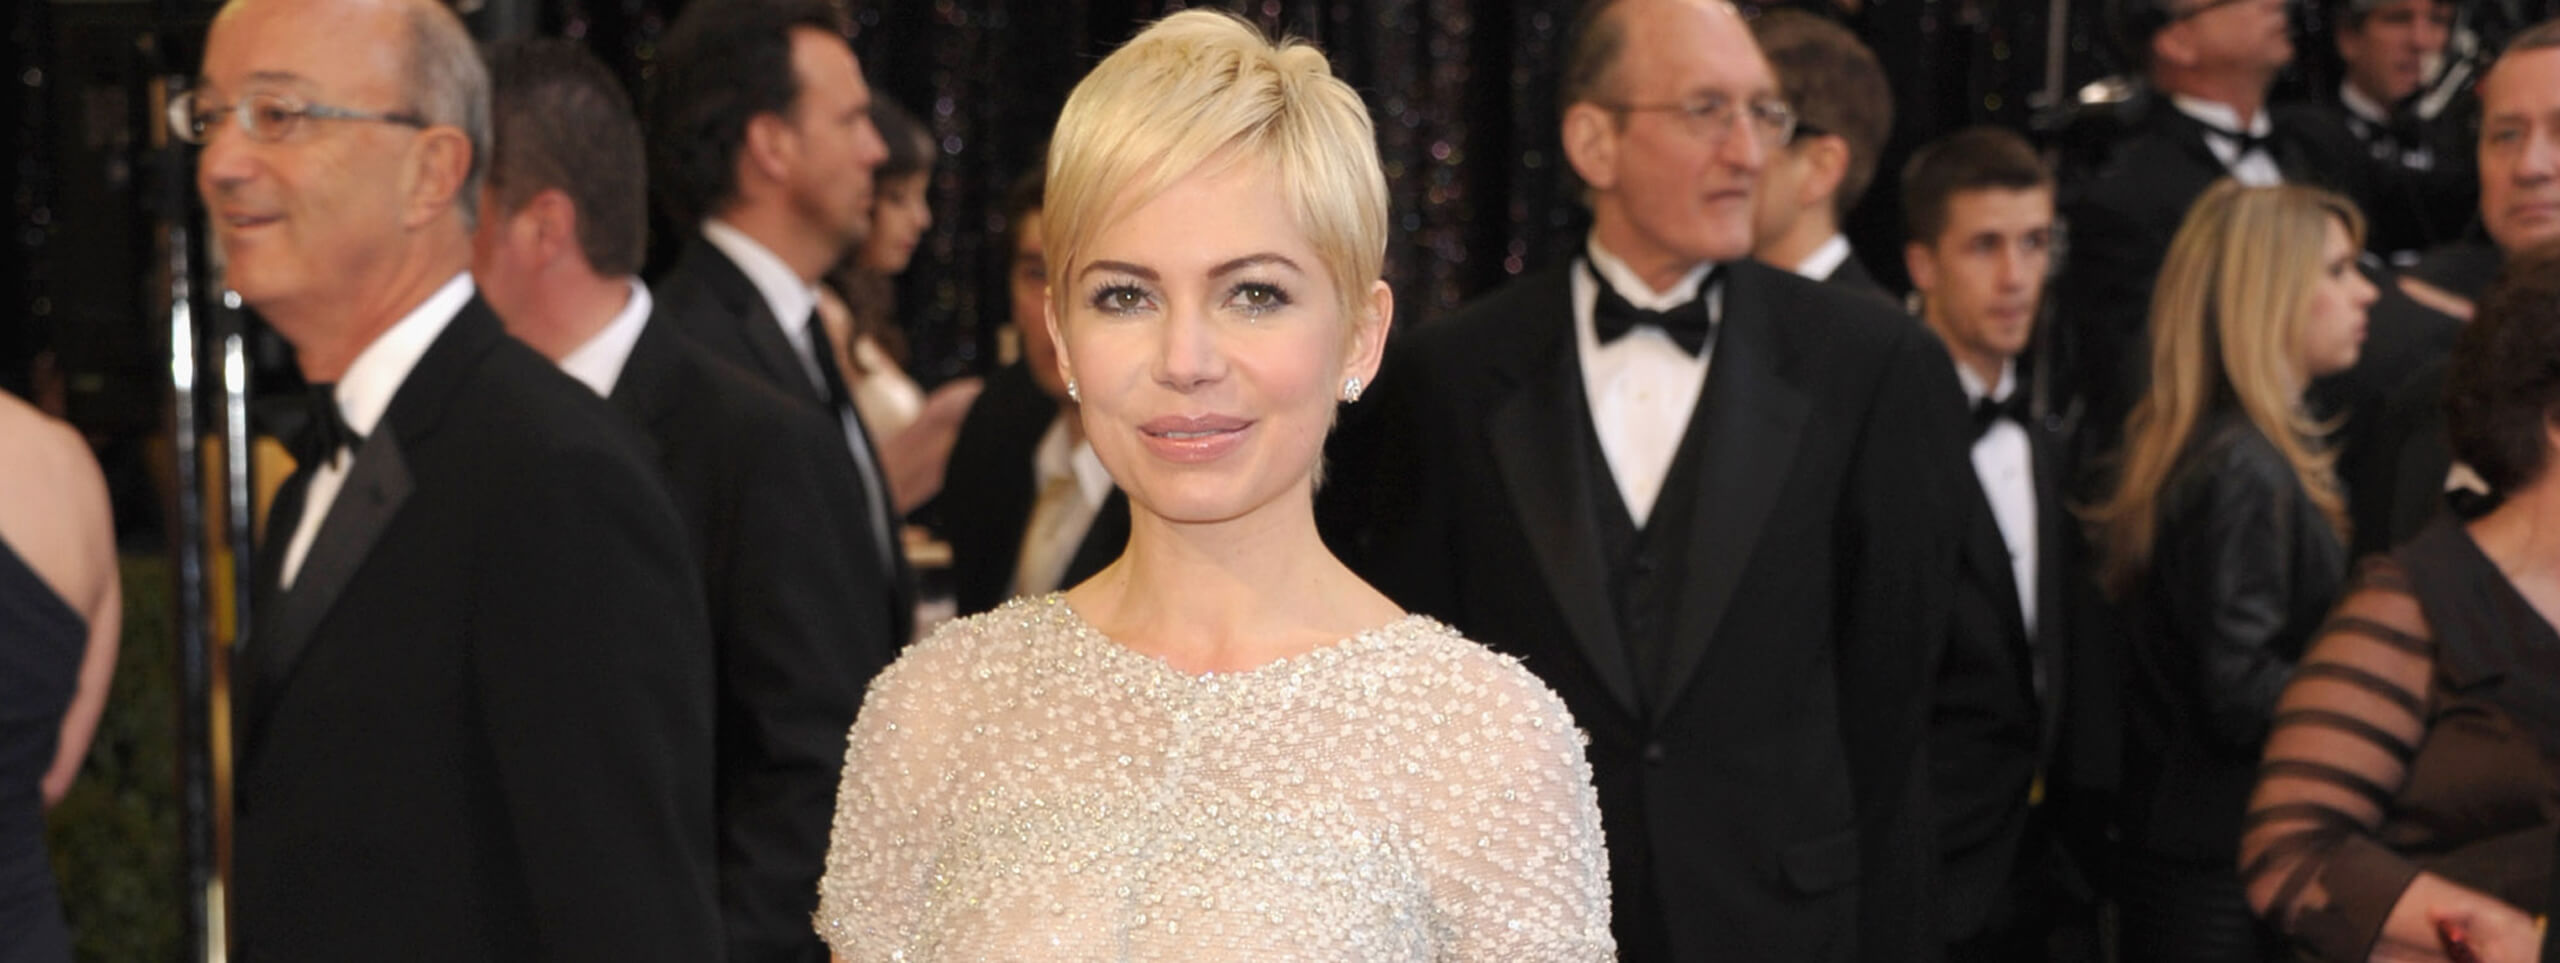 Michelle Williams con acconciatura pixie cut